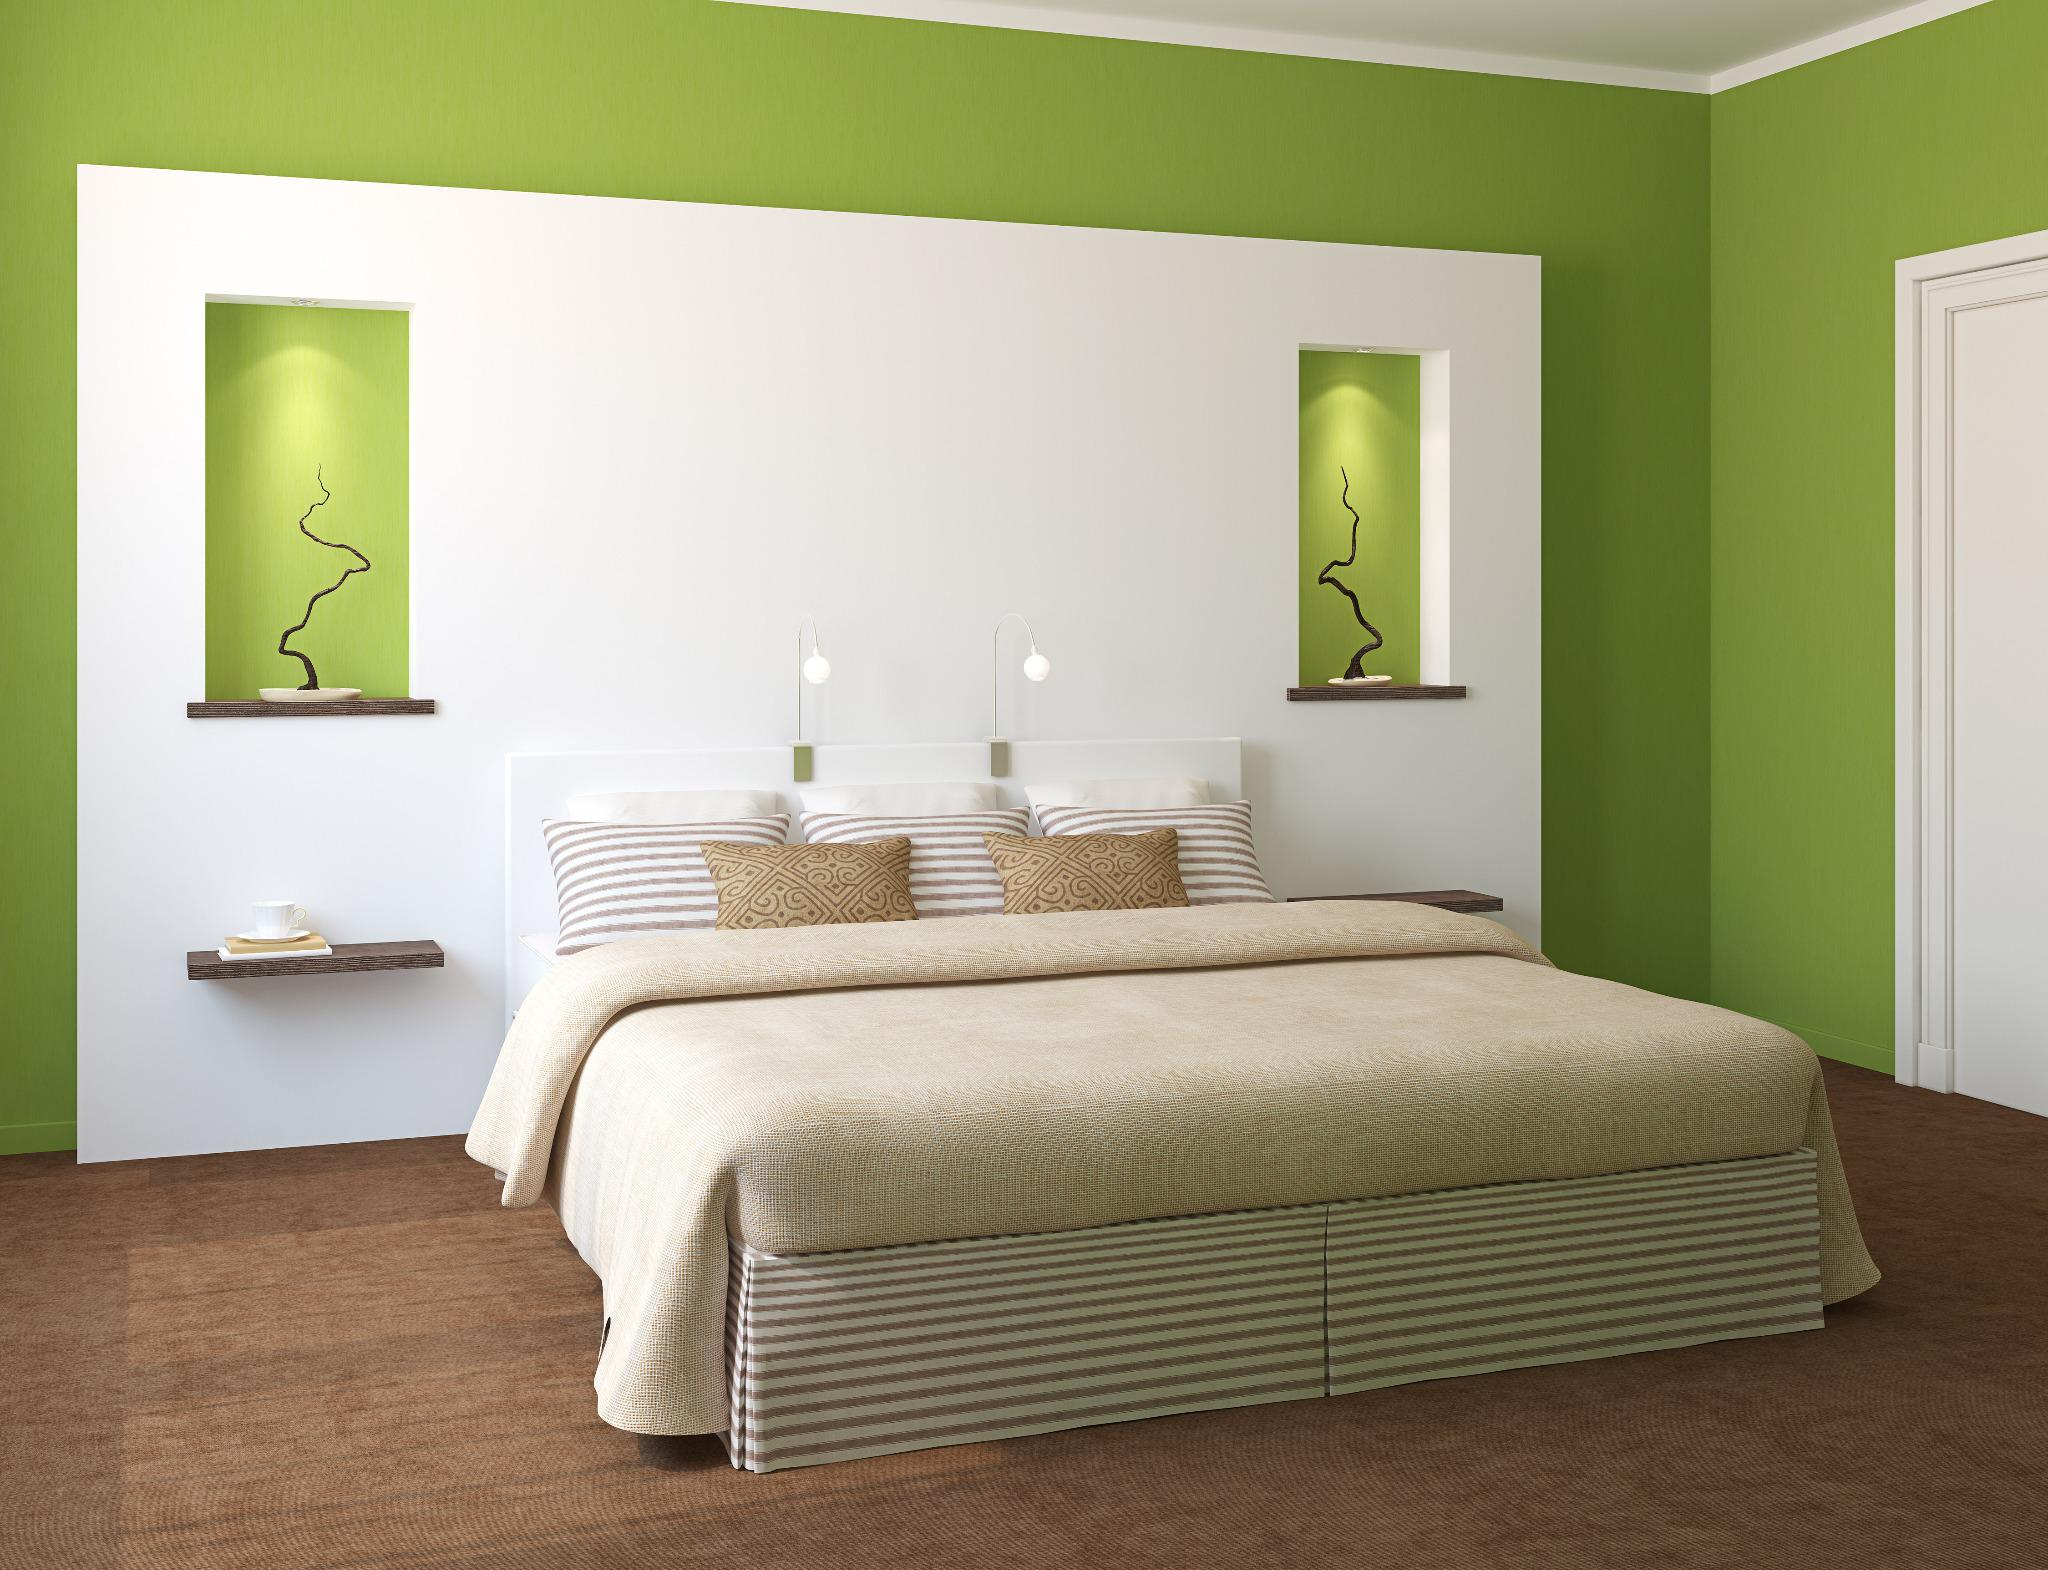 Nerolac Paints India on Twitter   White and green is the ideal colour for  every bedroom  don t you agree  Image Source   picdane ir  http   t co MyDuFBFm75. Nerolac Paints India on Twitter   White and green is the ideal